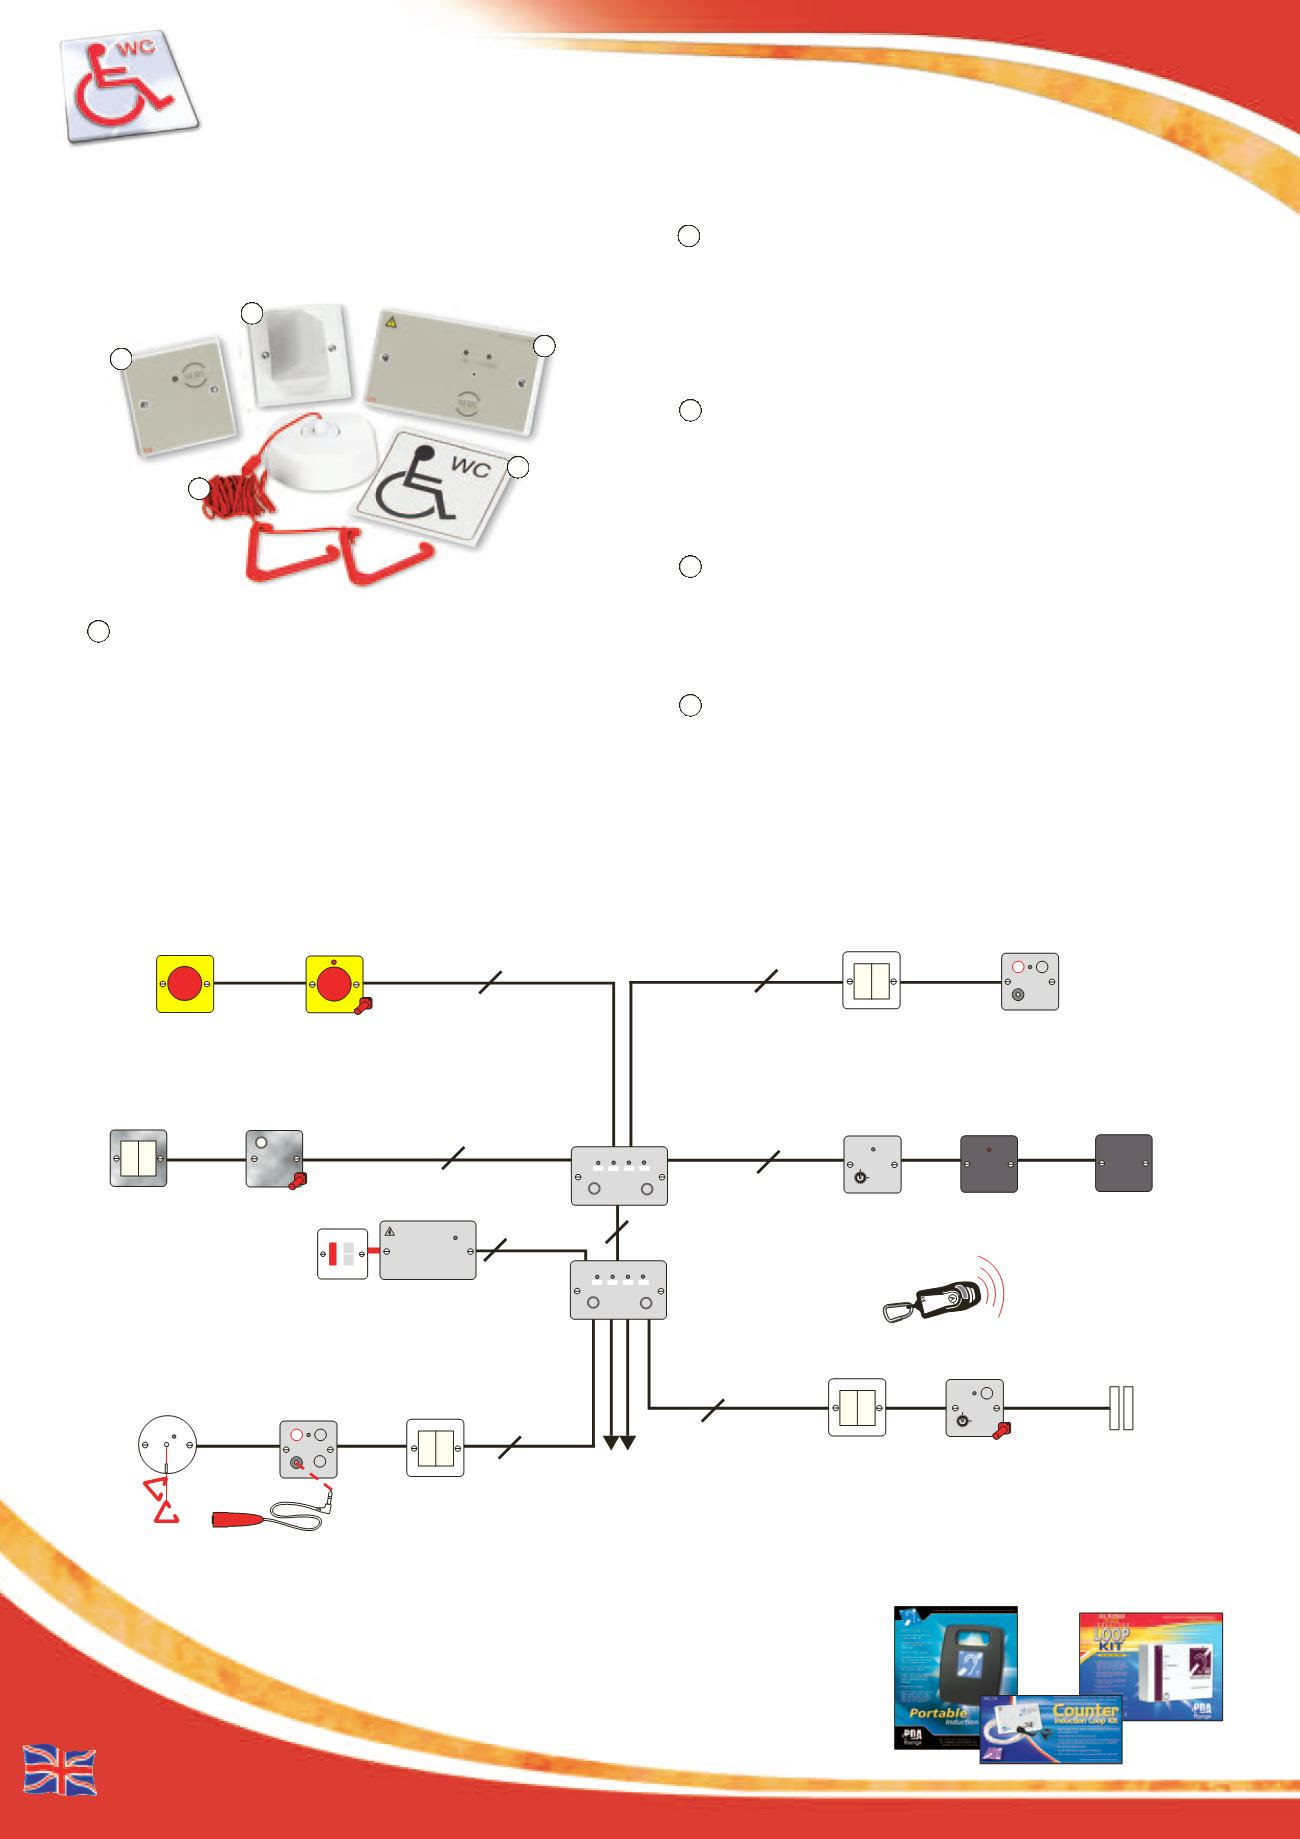 800 Series Nc951 Disabled Persons Toilet Alarm Kit